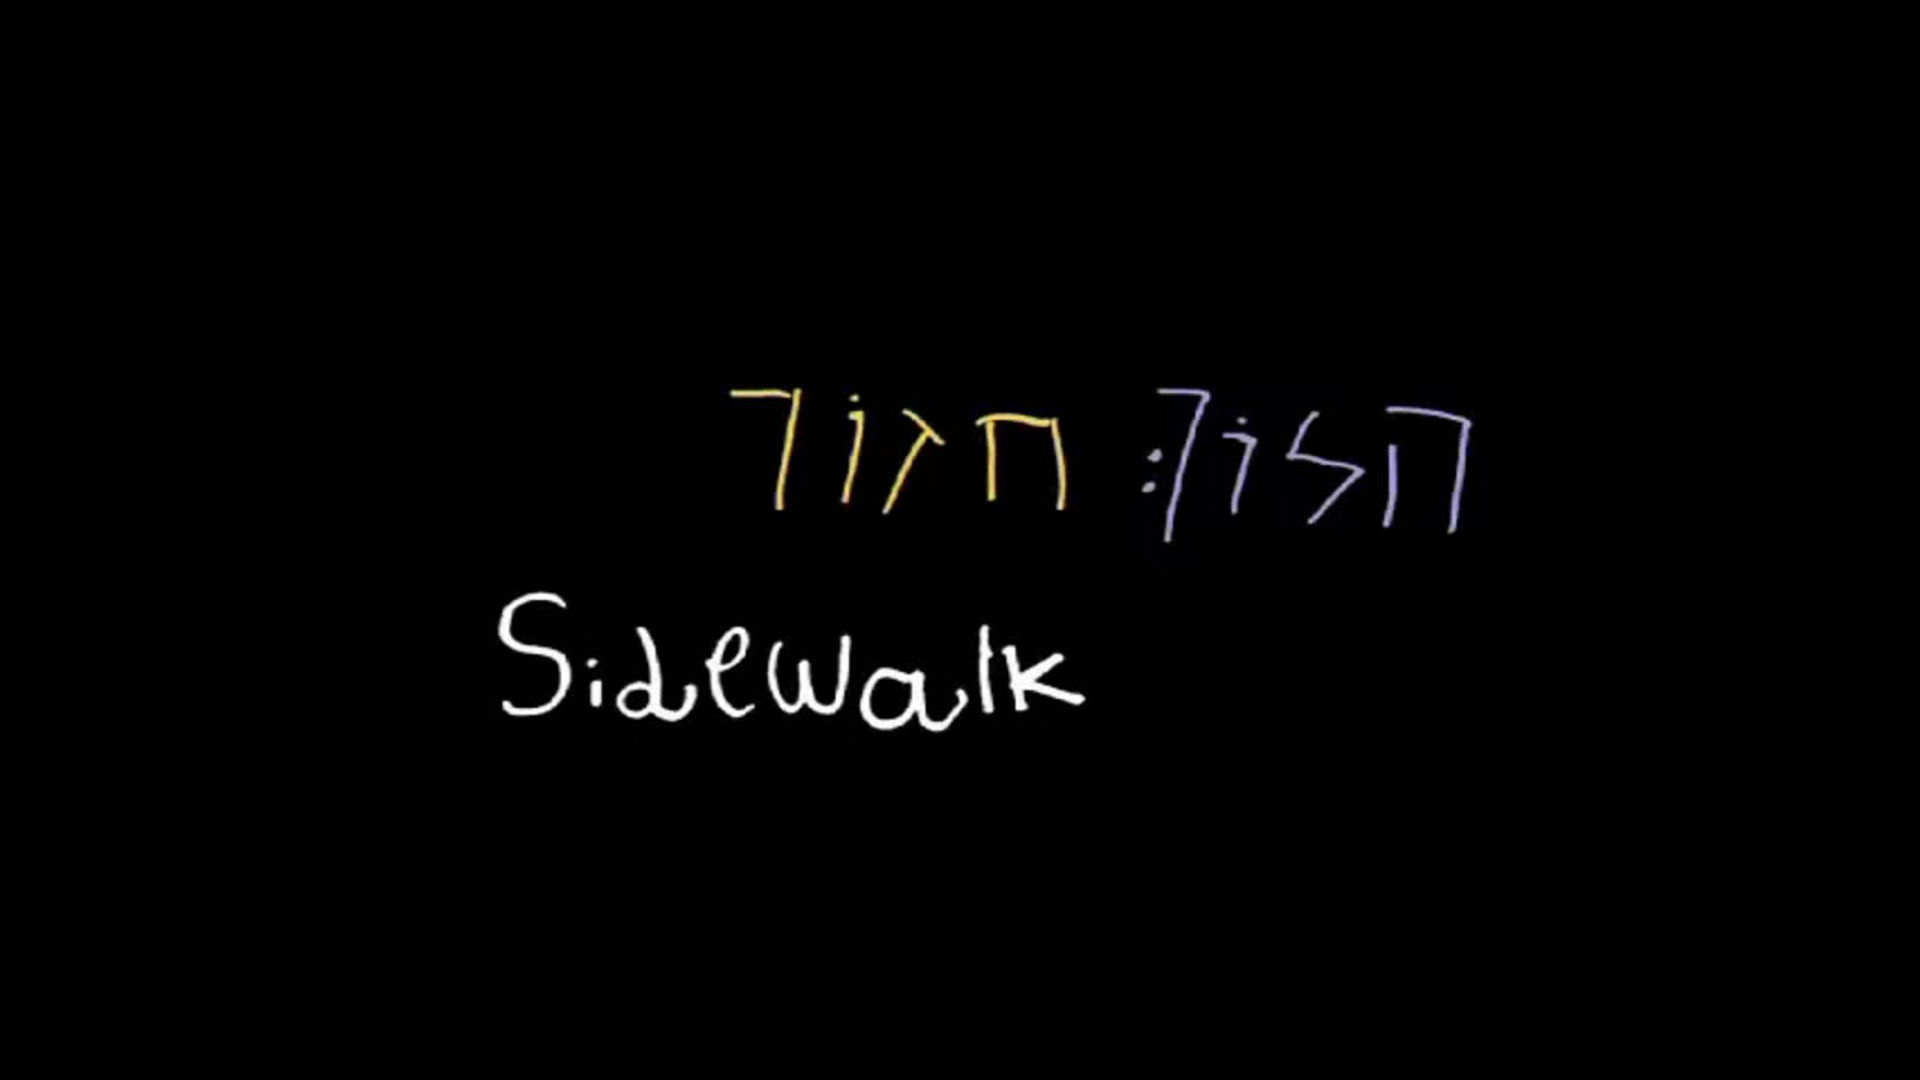 Watch Full Movie - Sidewalk